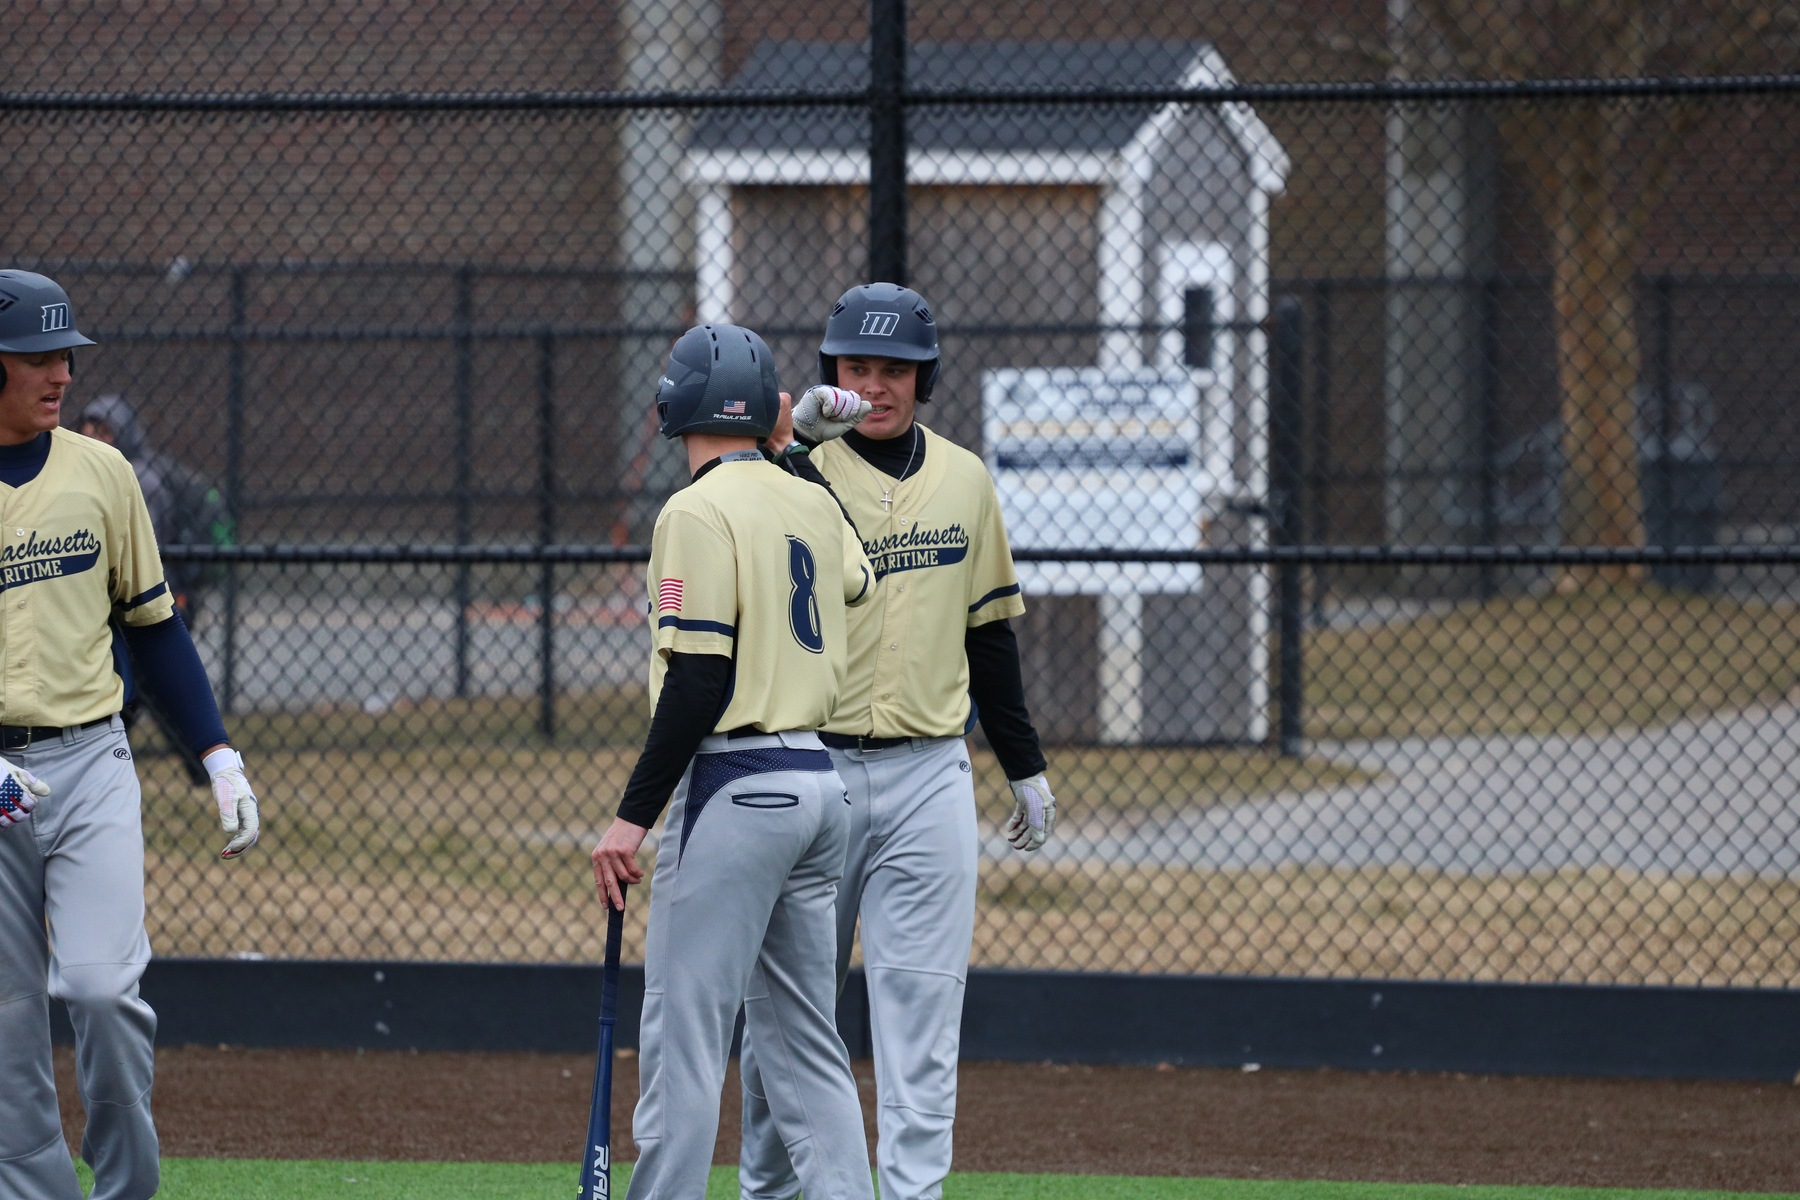 BucBall Splits Conference Doubleheader with Westfield to Avoid Series Sweep